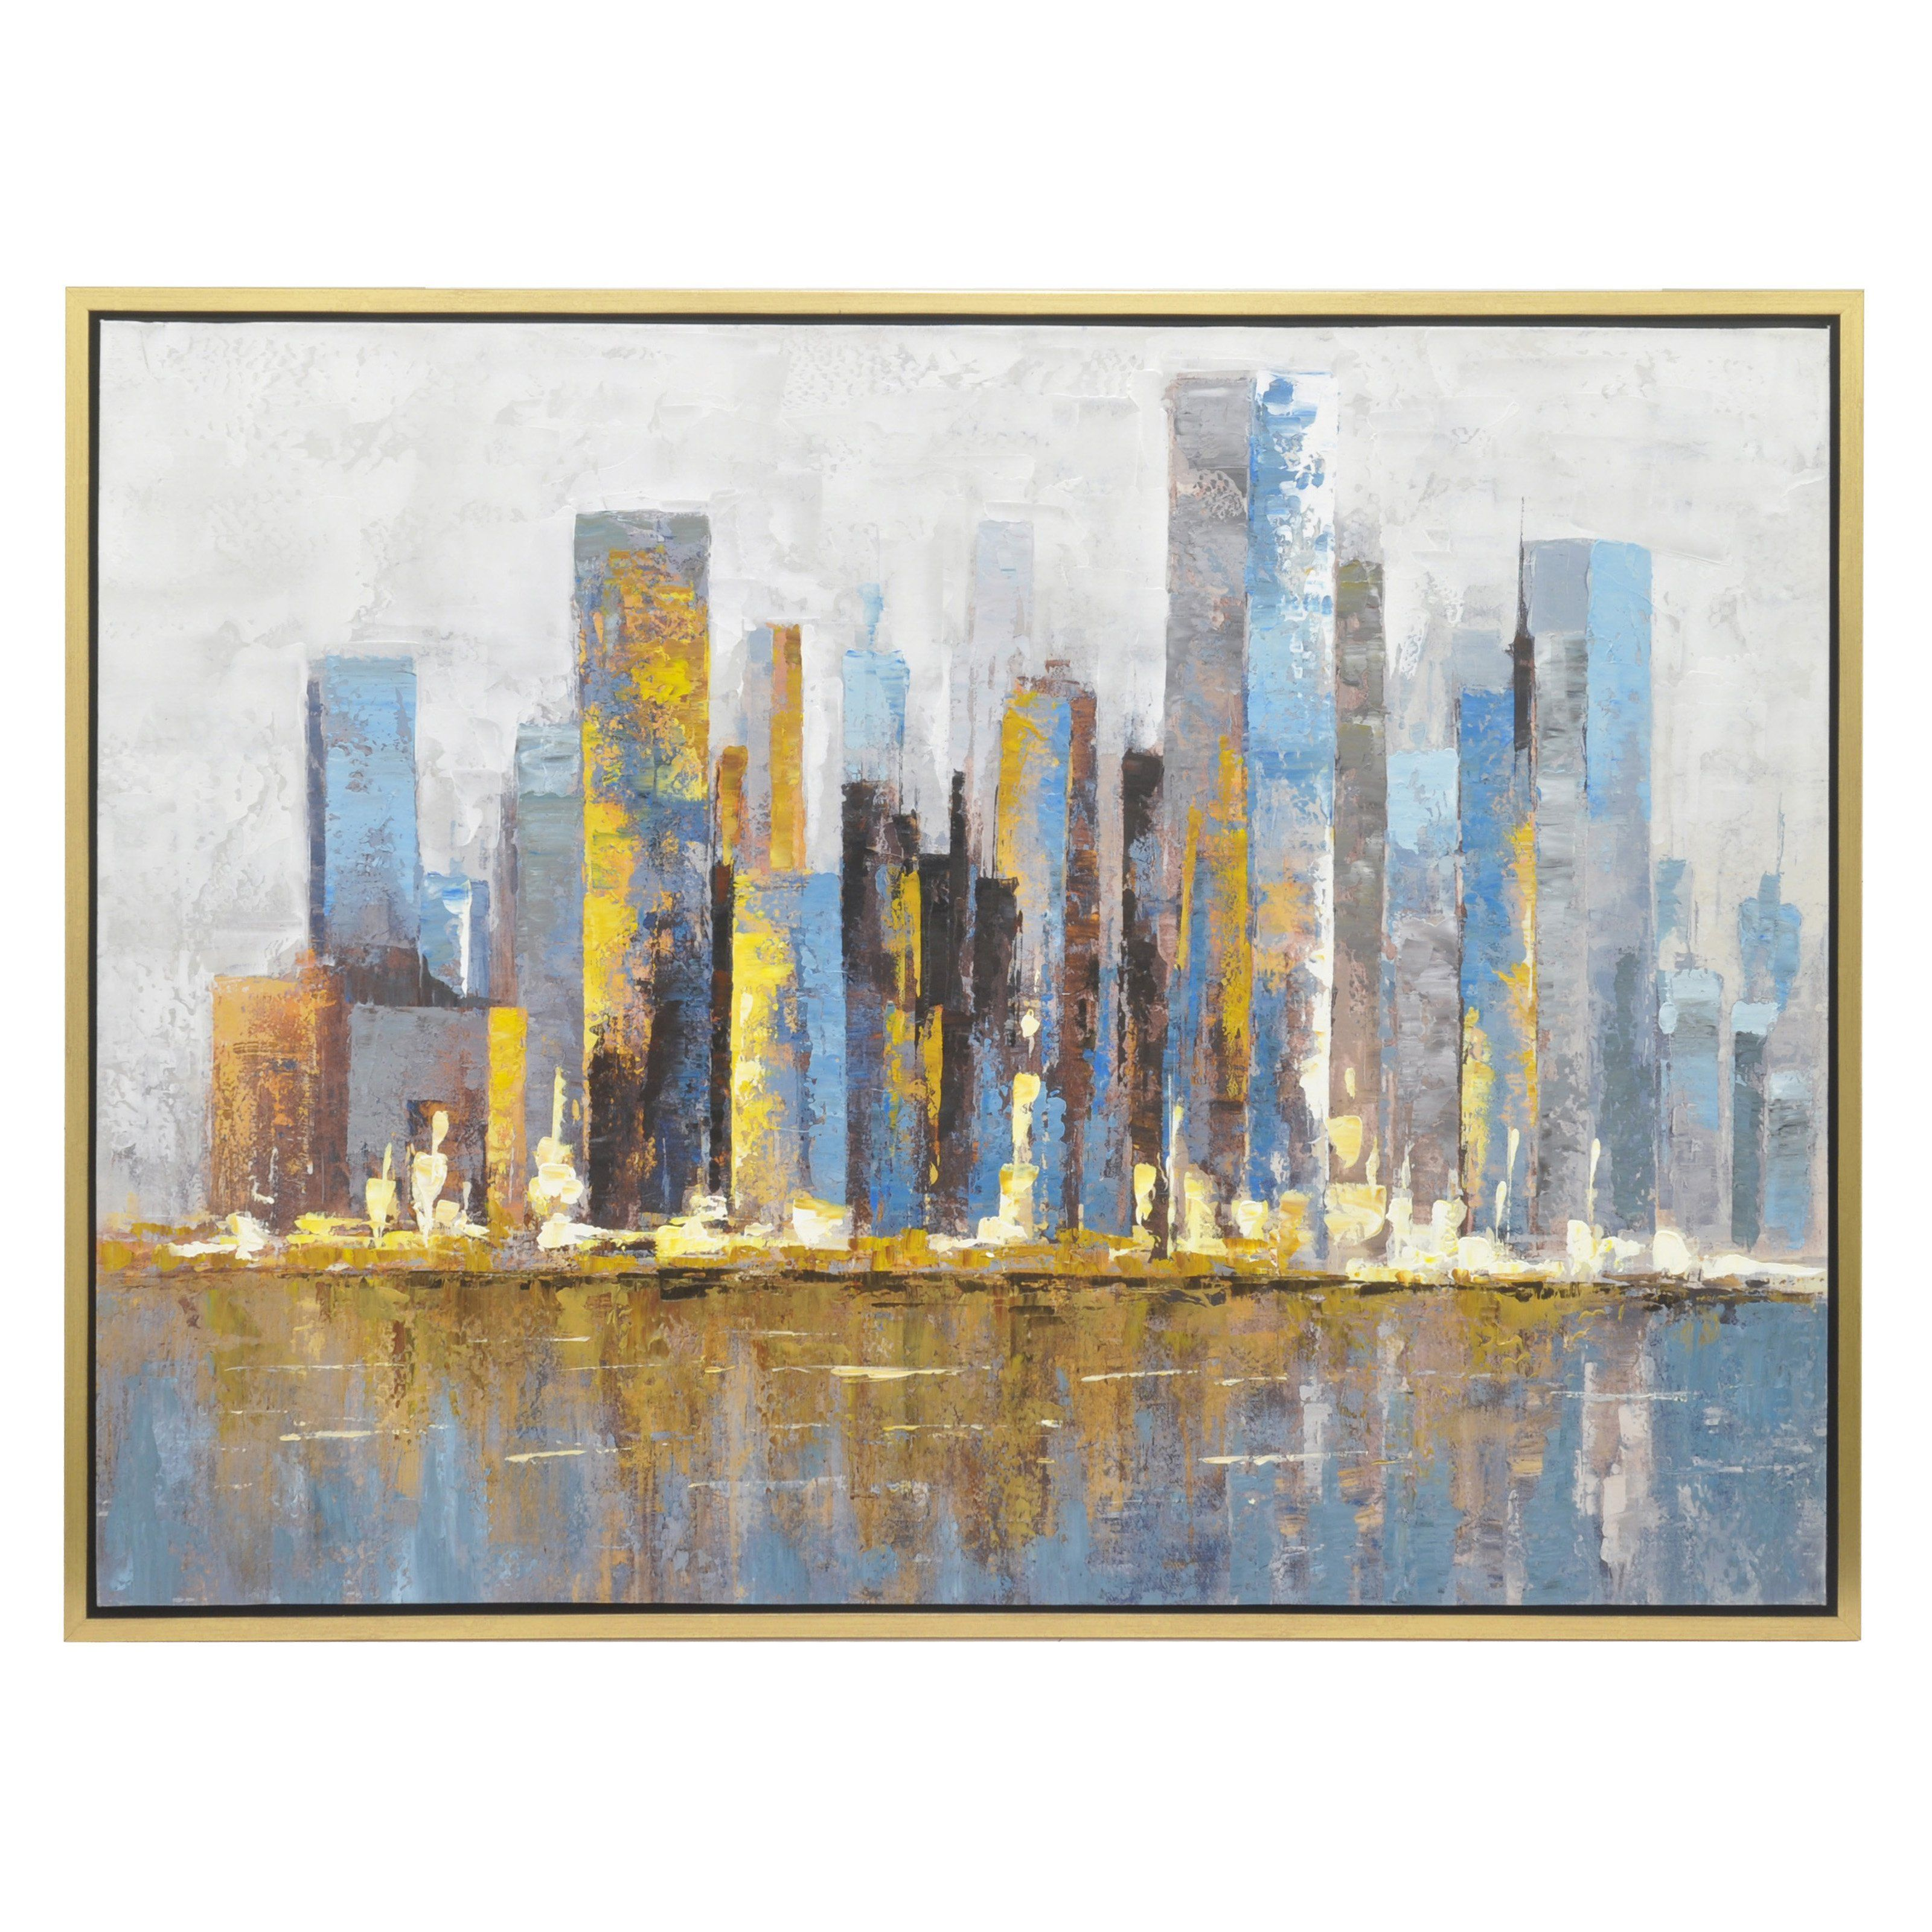 Three Hands Abstract Painting Wall Art - 47W x 35.4H in. - 50426